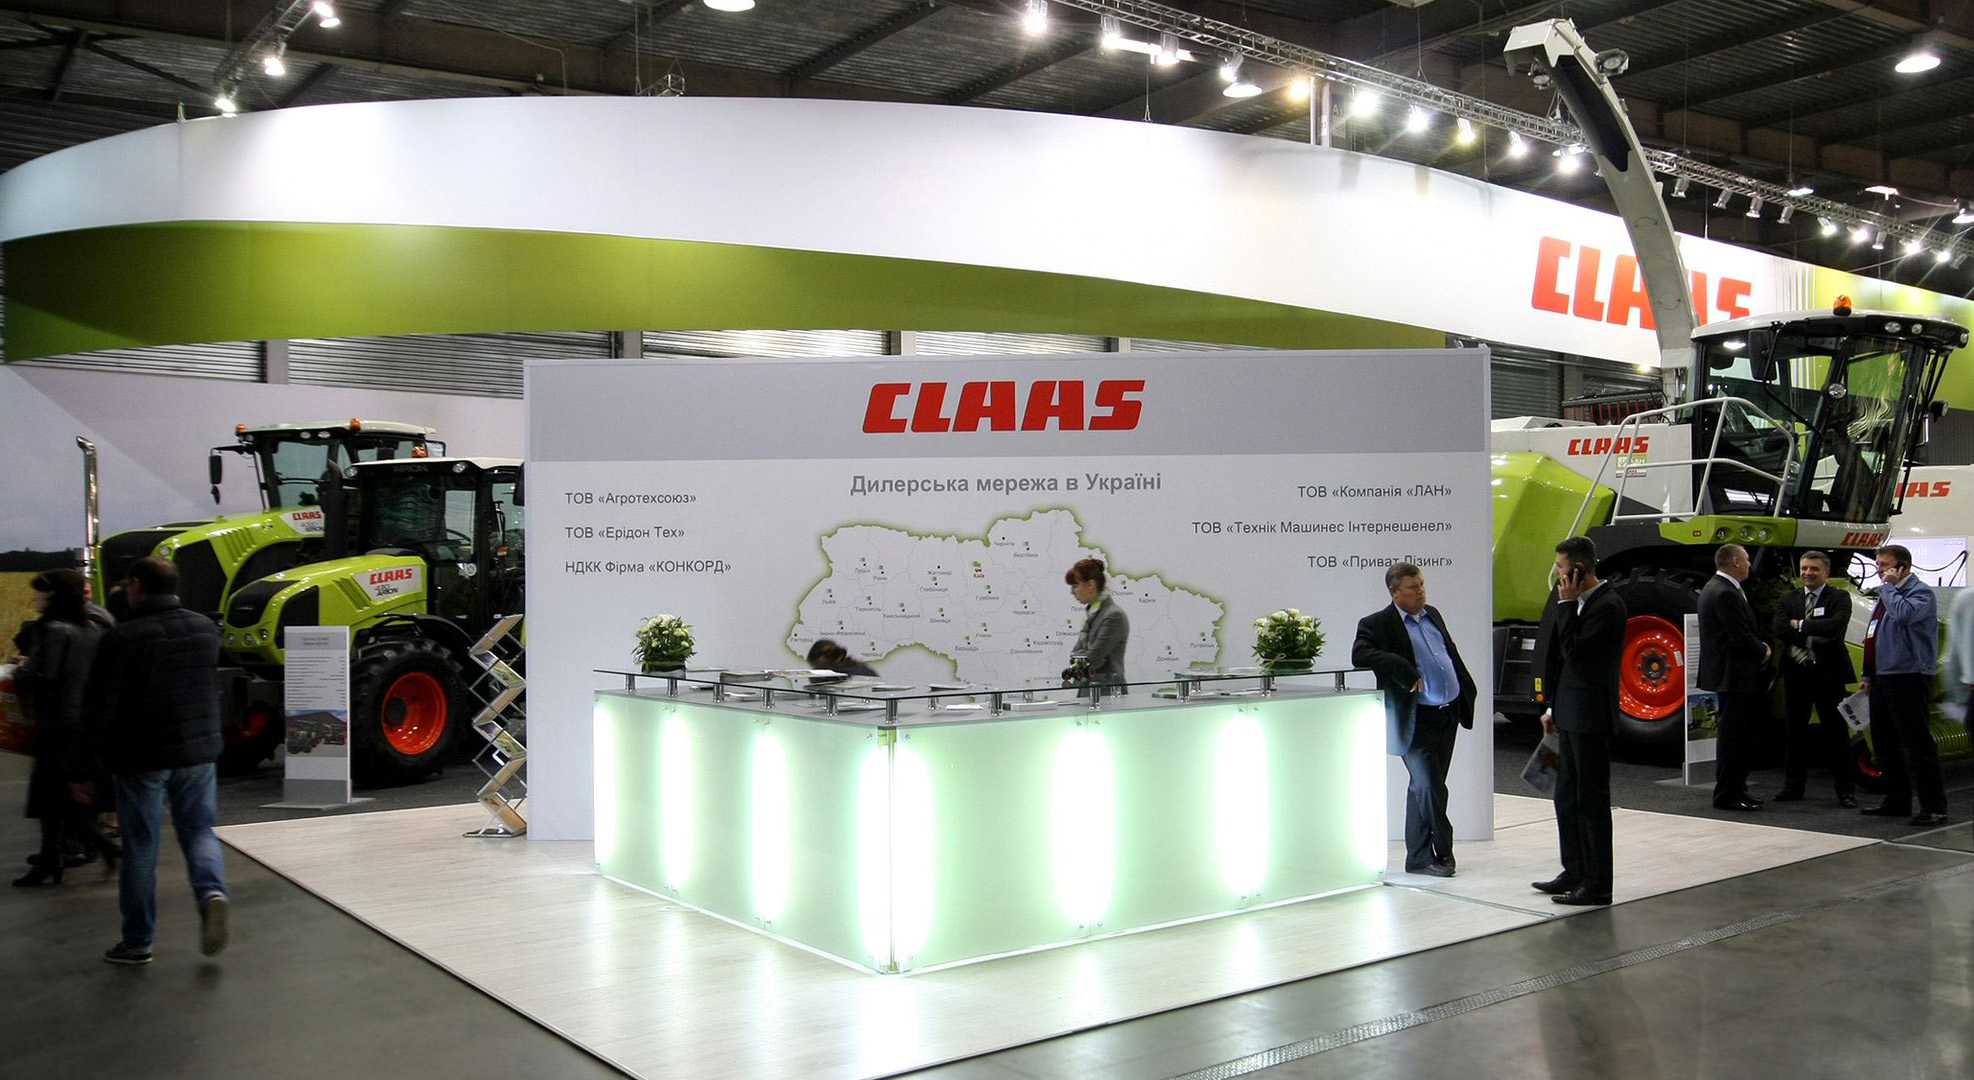 stand with luminous reception for InterAgro exhibition in Kyiv